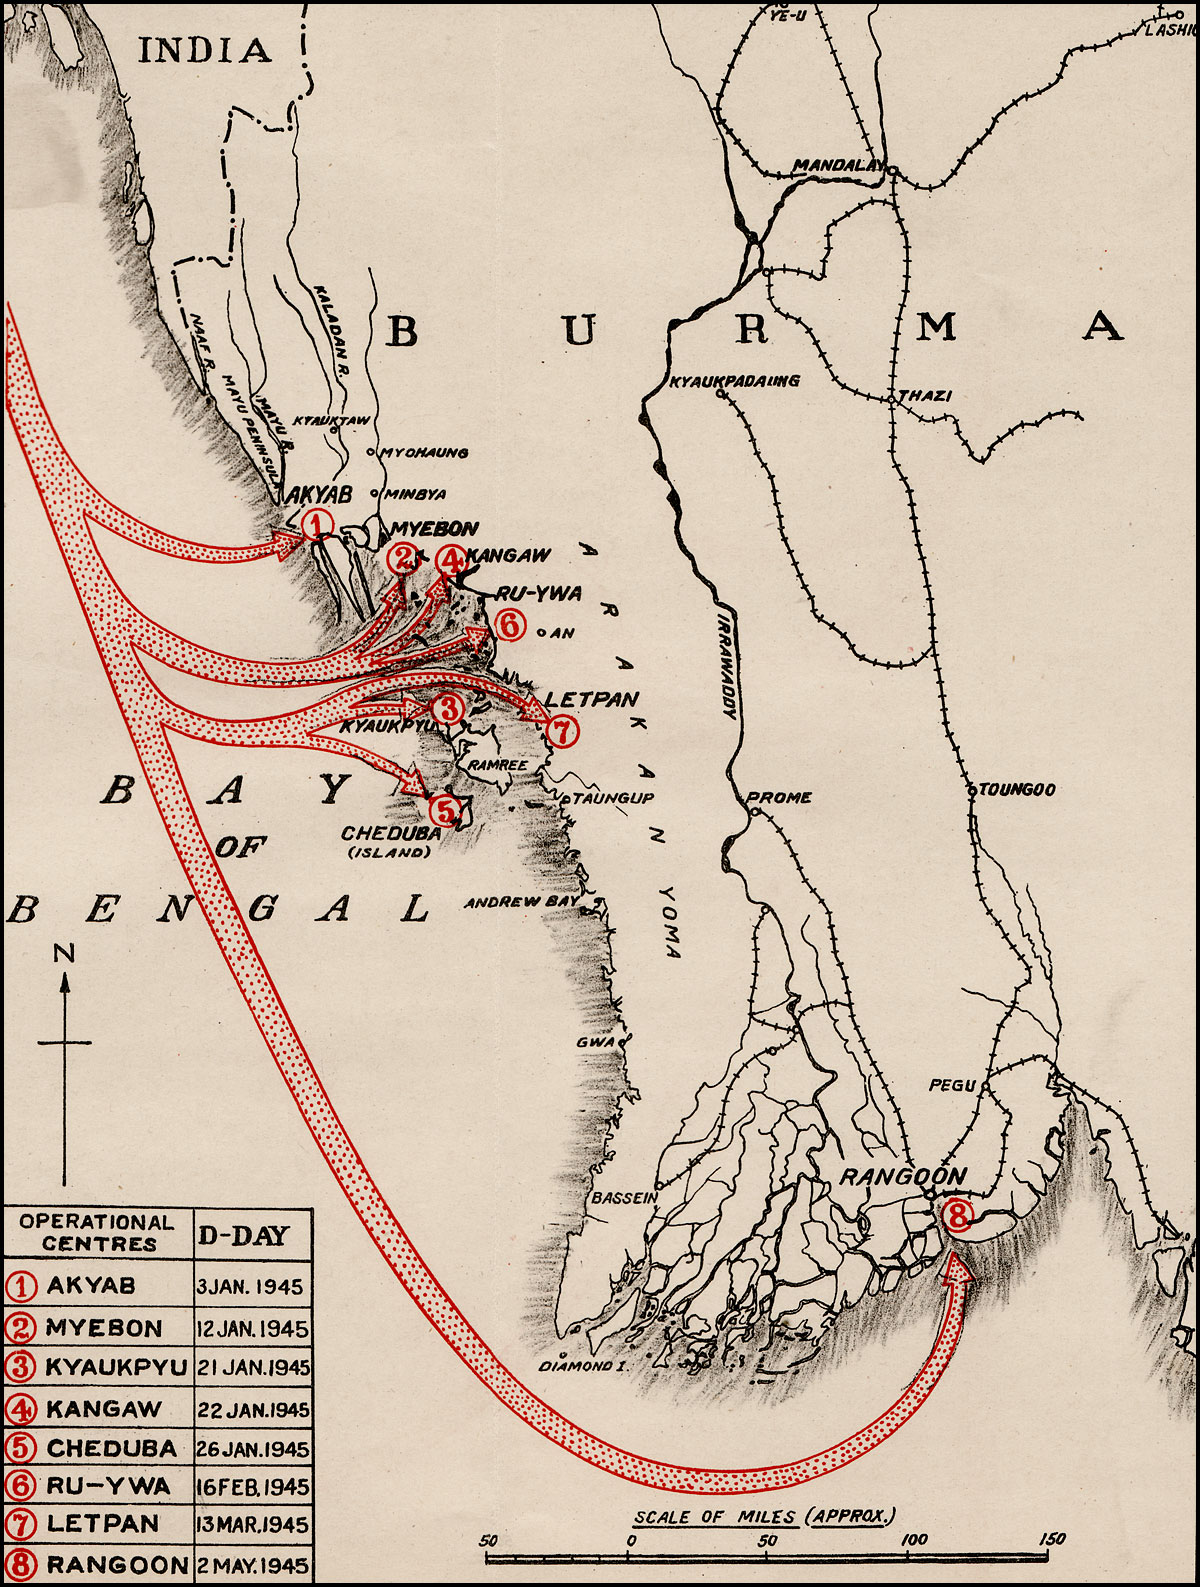 Map showing ambhibious operations undertaken by the Royal Indian Navy in 1945, including the landings at Akyab on 3 January - site of the cancelled Operation Bullfrog landings of a year earlier. Chittagong lies on the Indian coast at the top left corner. (From  The Royal Indian Navy, 1939-45 , part of  The Official History of the Indian Armed Forces in the Second World War ).